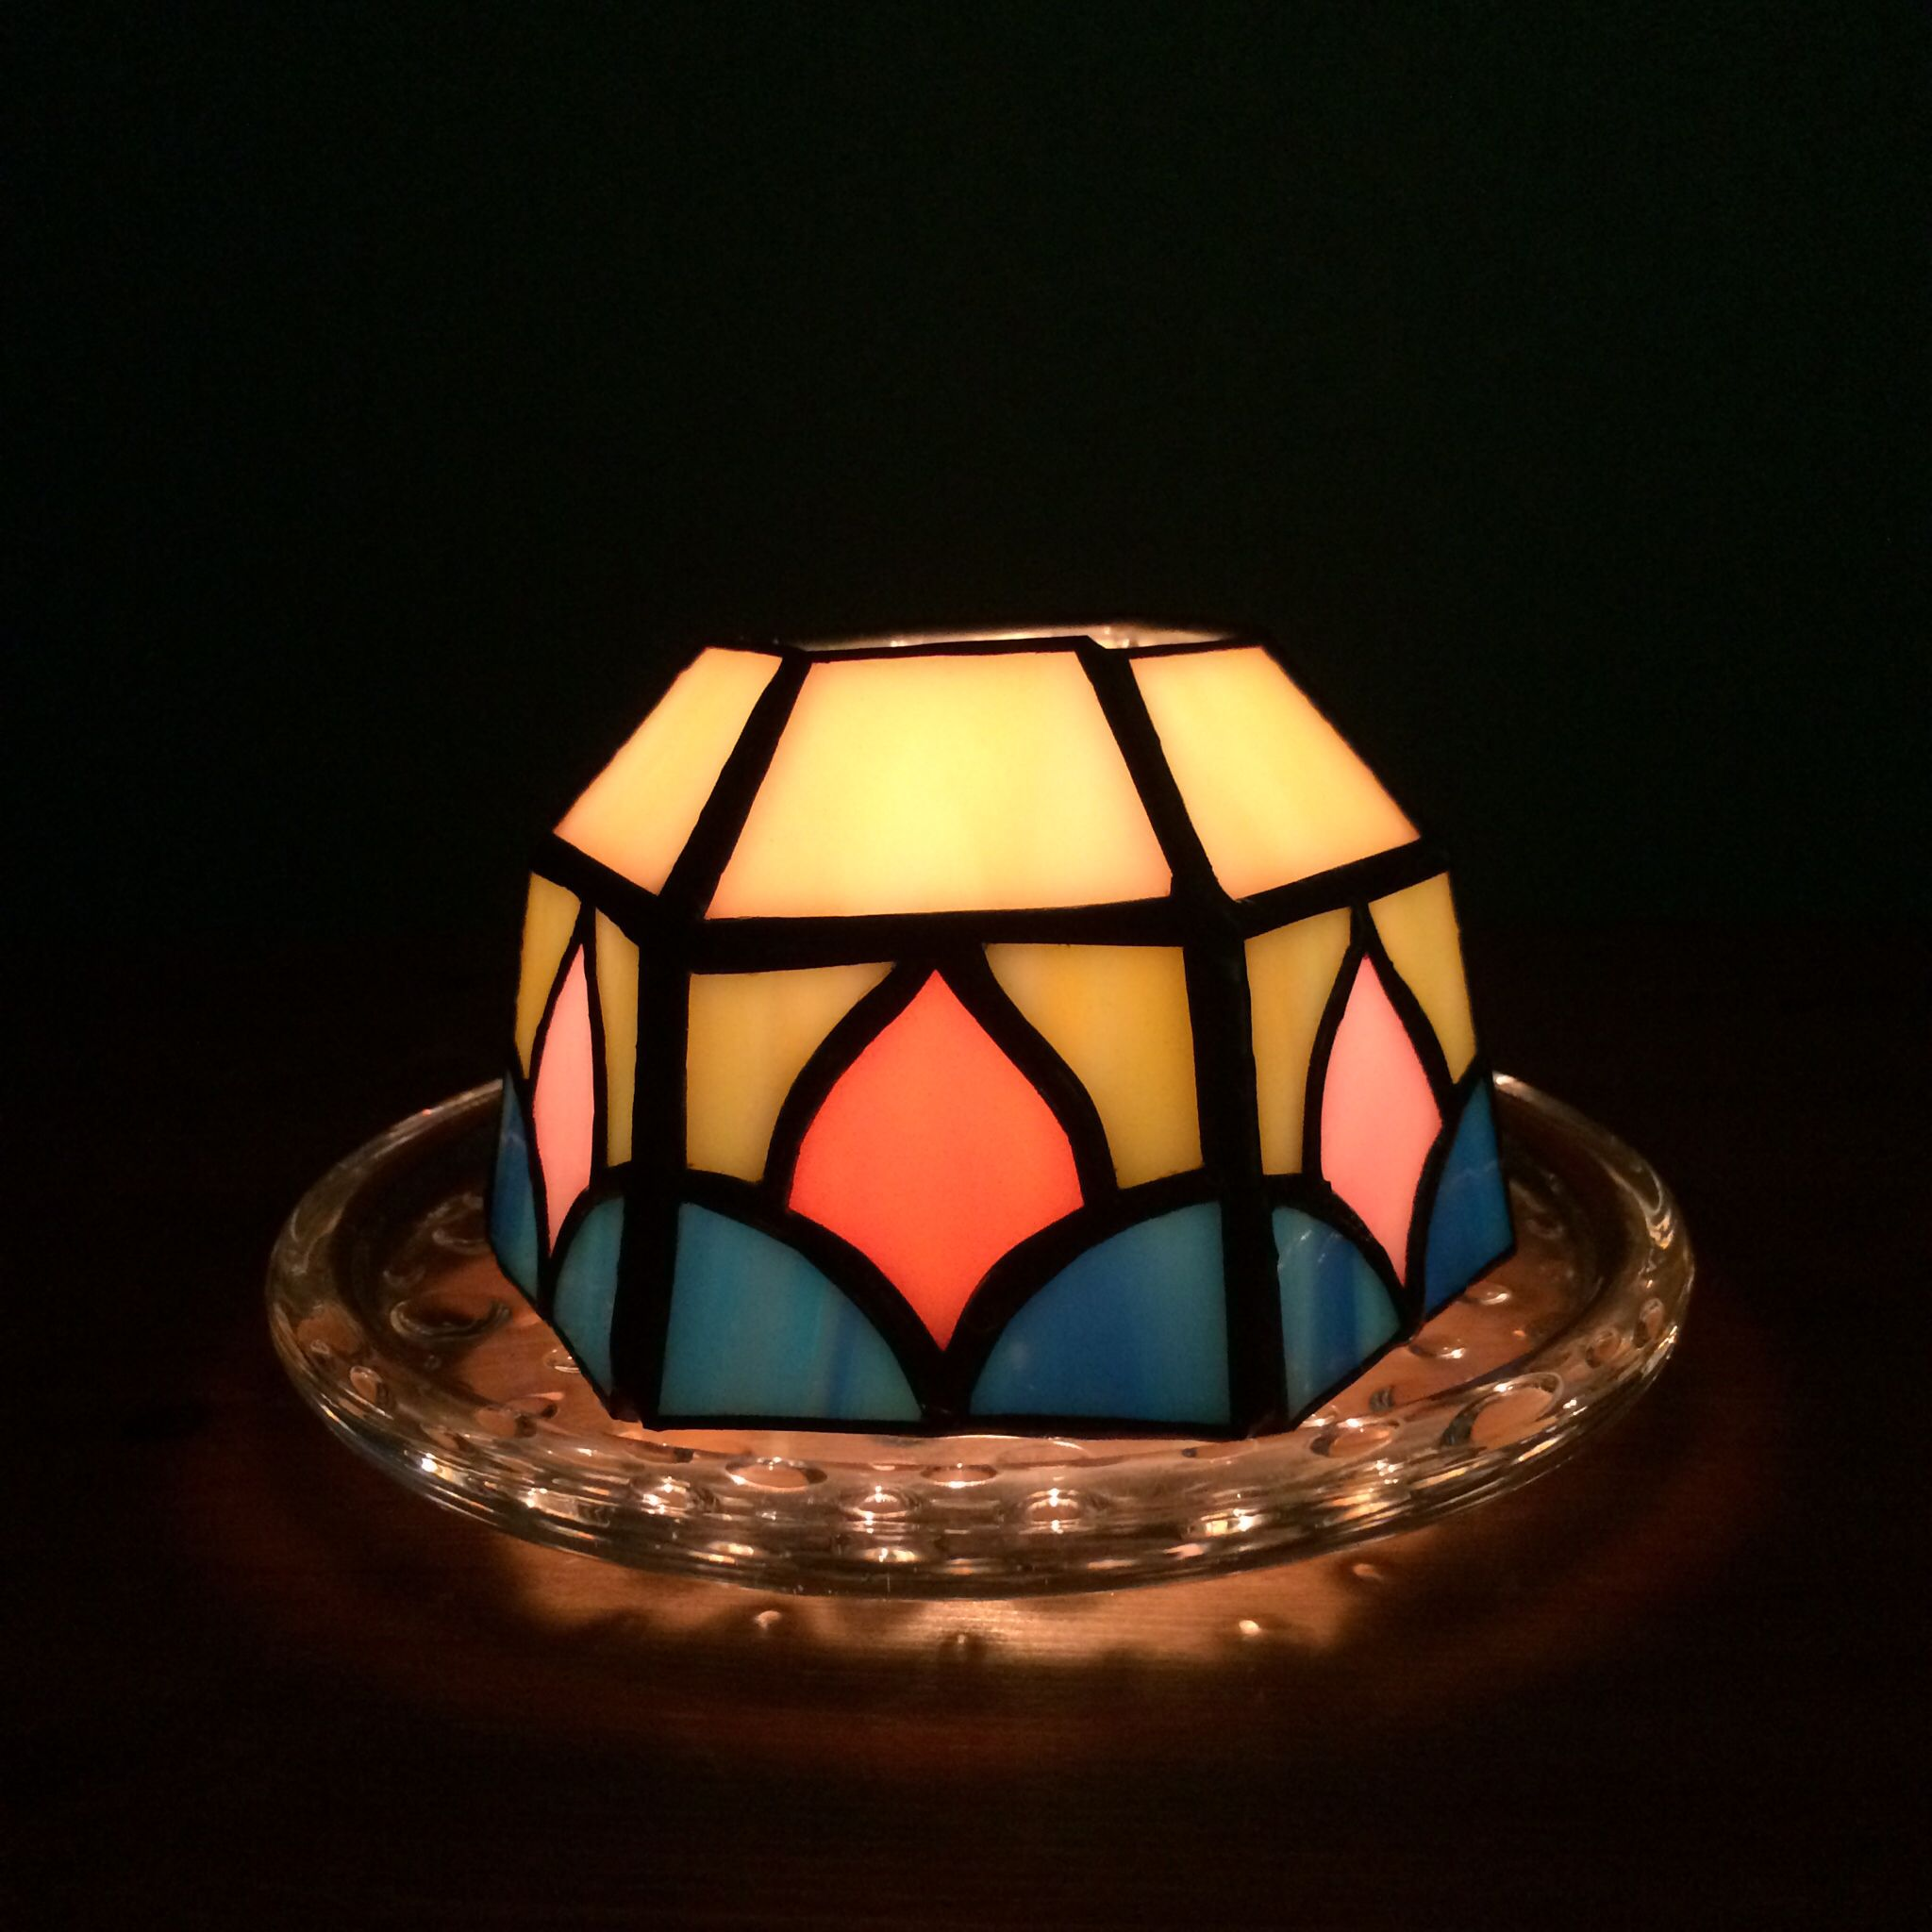 Stainedglass candle holder